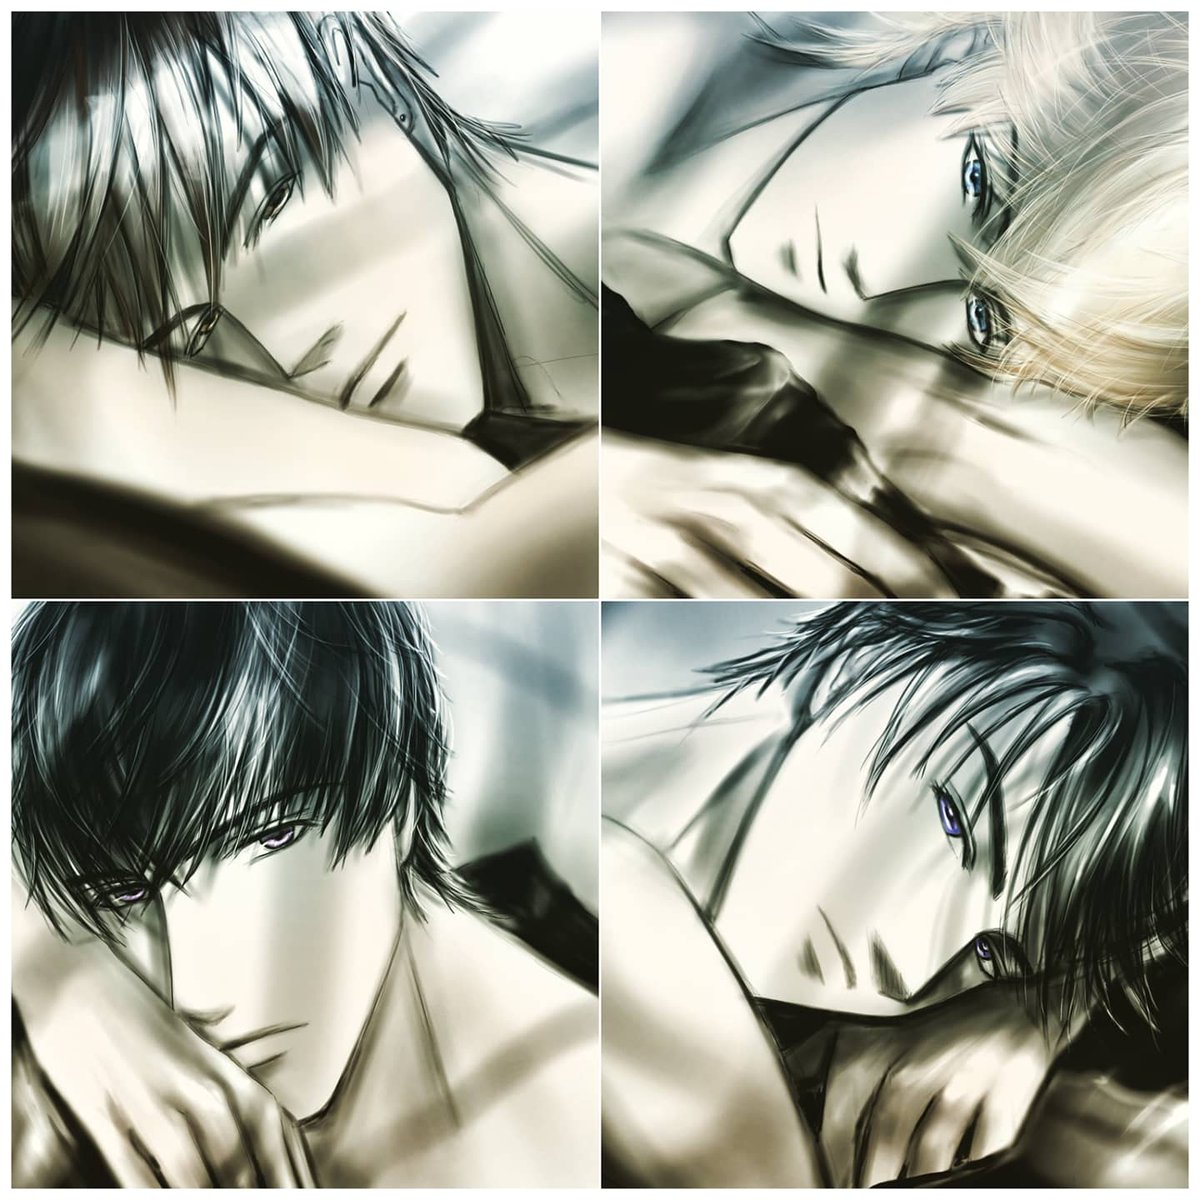 【GLance on bed】 【晨起惺忪】 Thank you for helping me to think of the name of this series  Although is a very quick draw , really love them .Hope you all like it #mrlovefanart #fanart #mrlovequeenschoice #Gavin #Victor #Lucien #Kiro #drawing  #MLQC  #戀與製作人  #恋与制作人